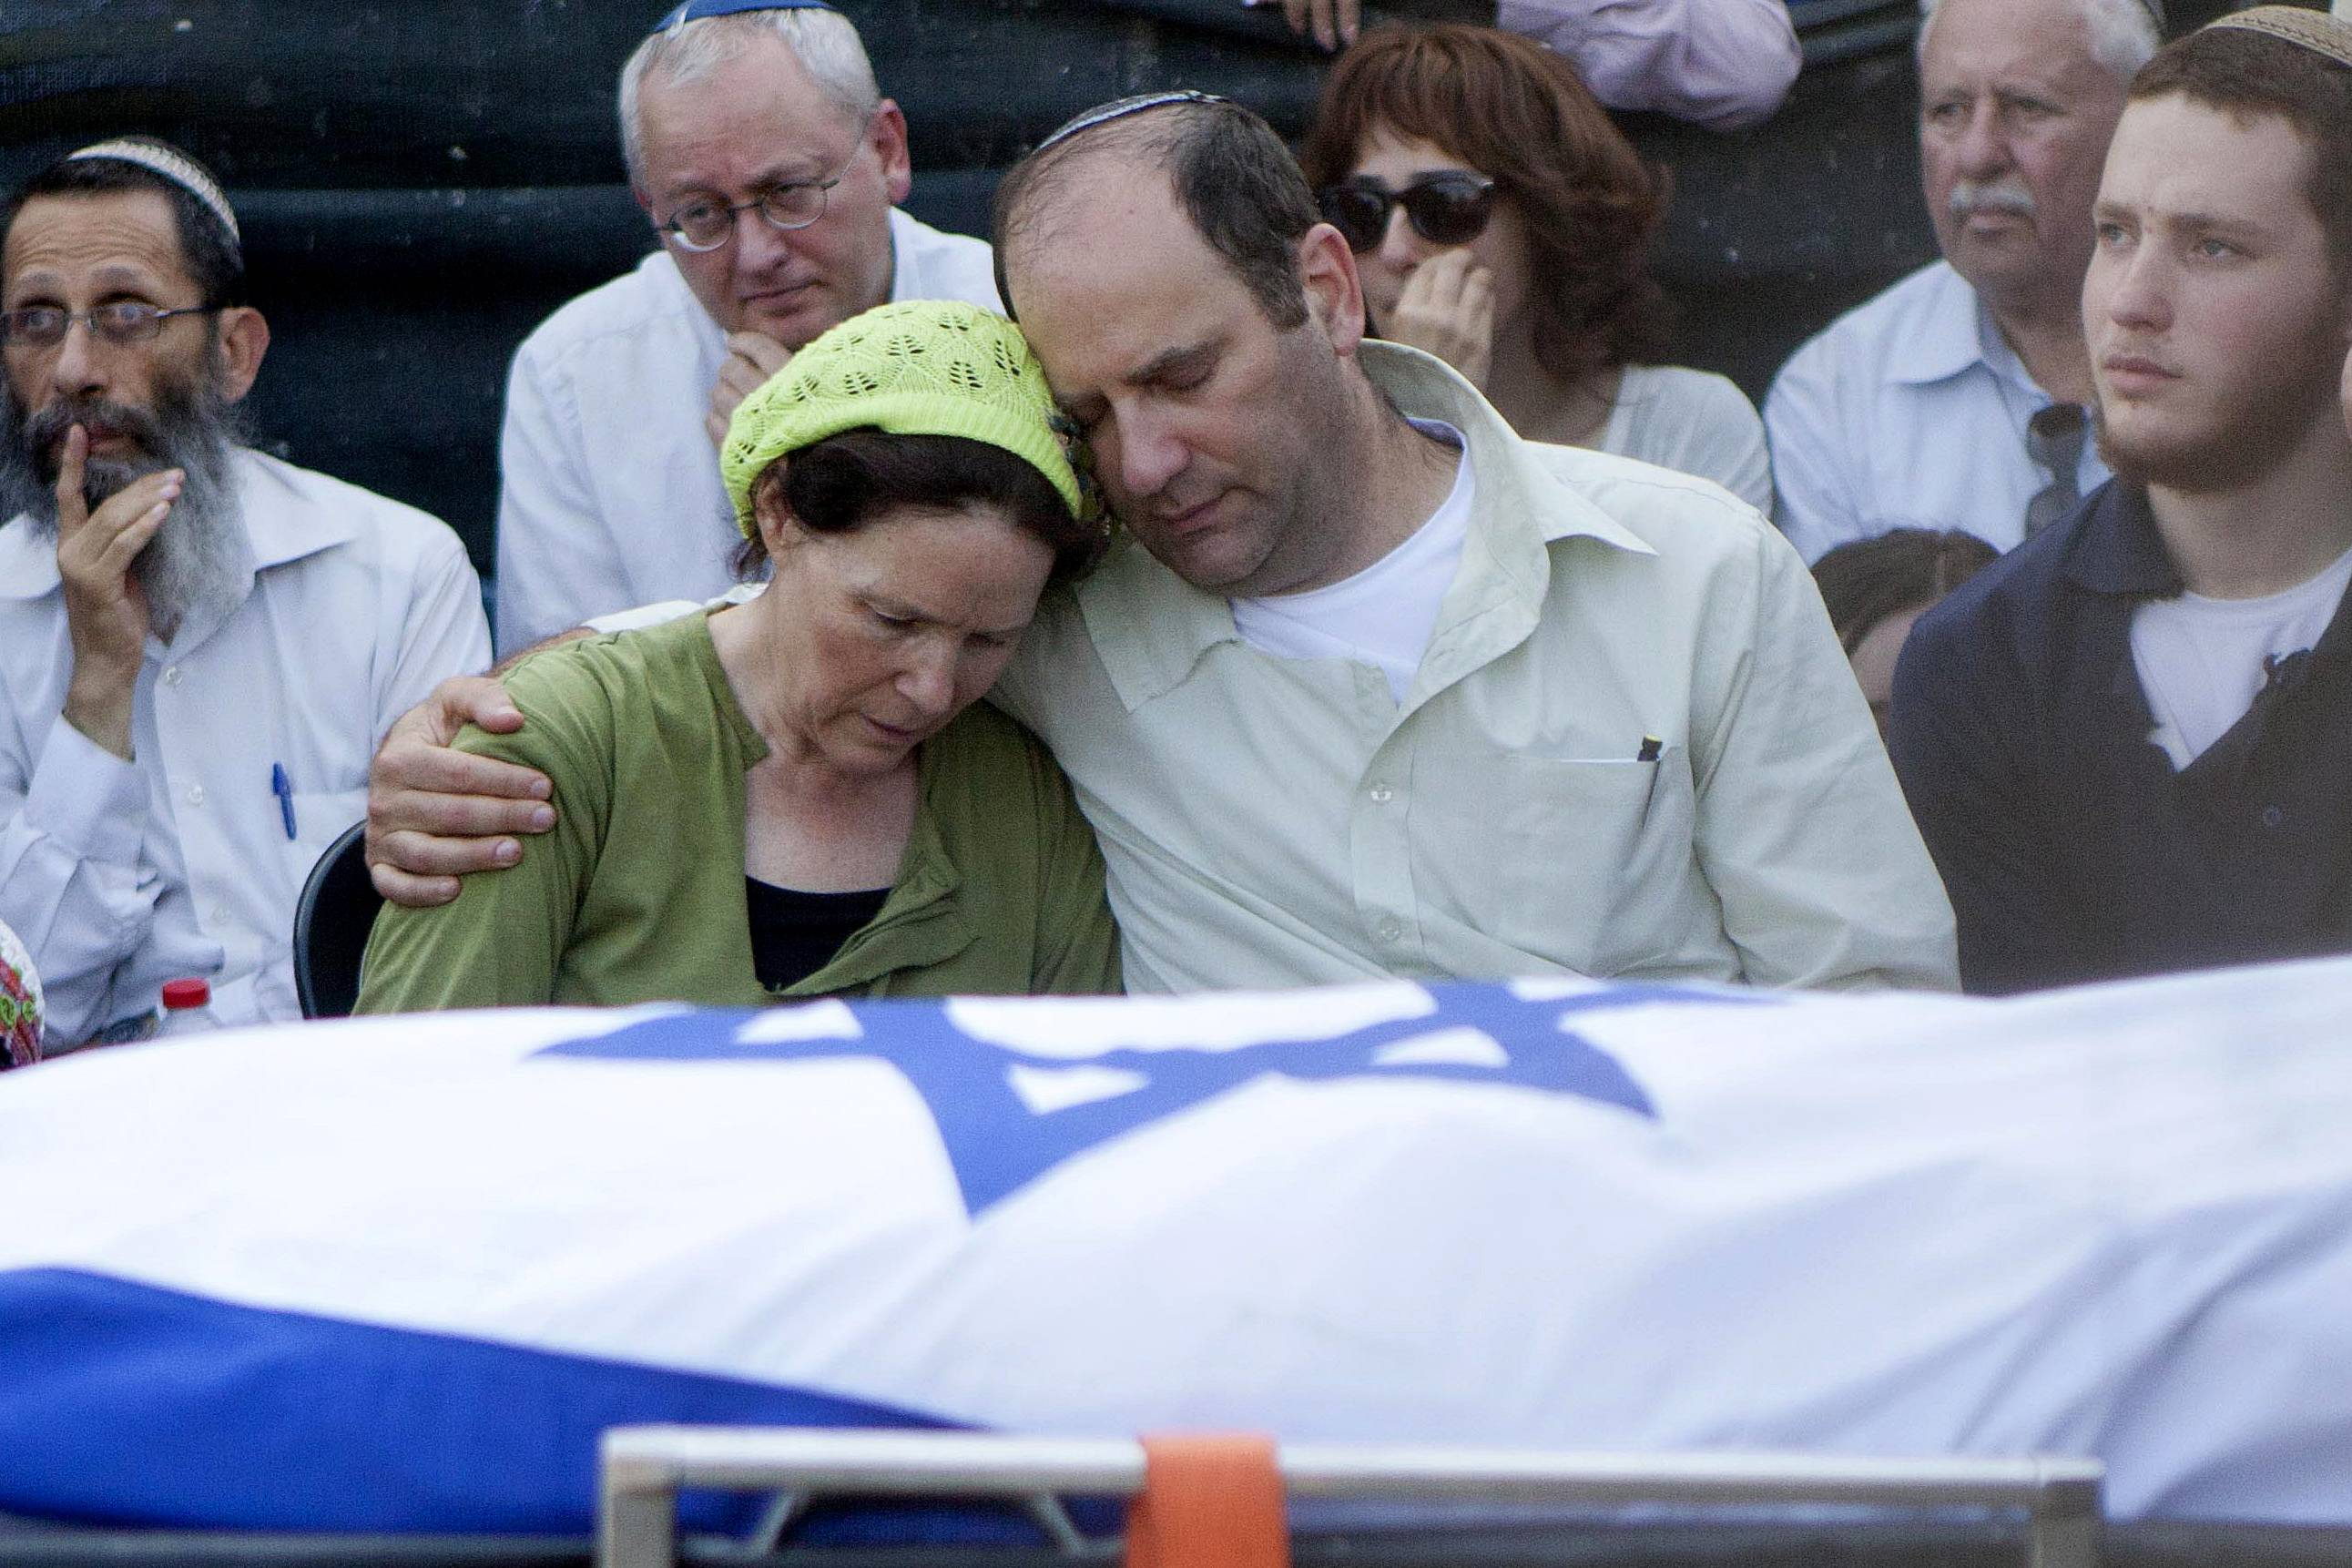 Avi and Rachel Fraenkel embrace during the funeral of their son, Naftali, a 16-year-old with dual Israeli-American citizenship, in the West Bank Jewish settlement of Nof Ayalon on Tuesday.